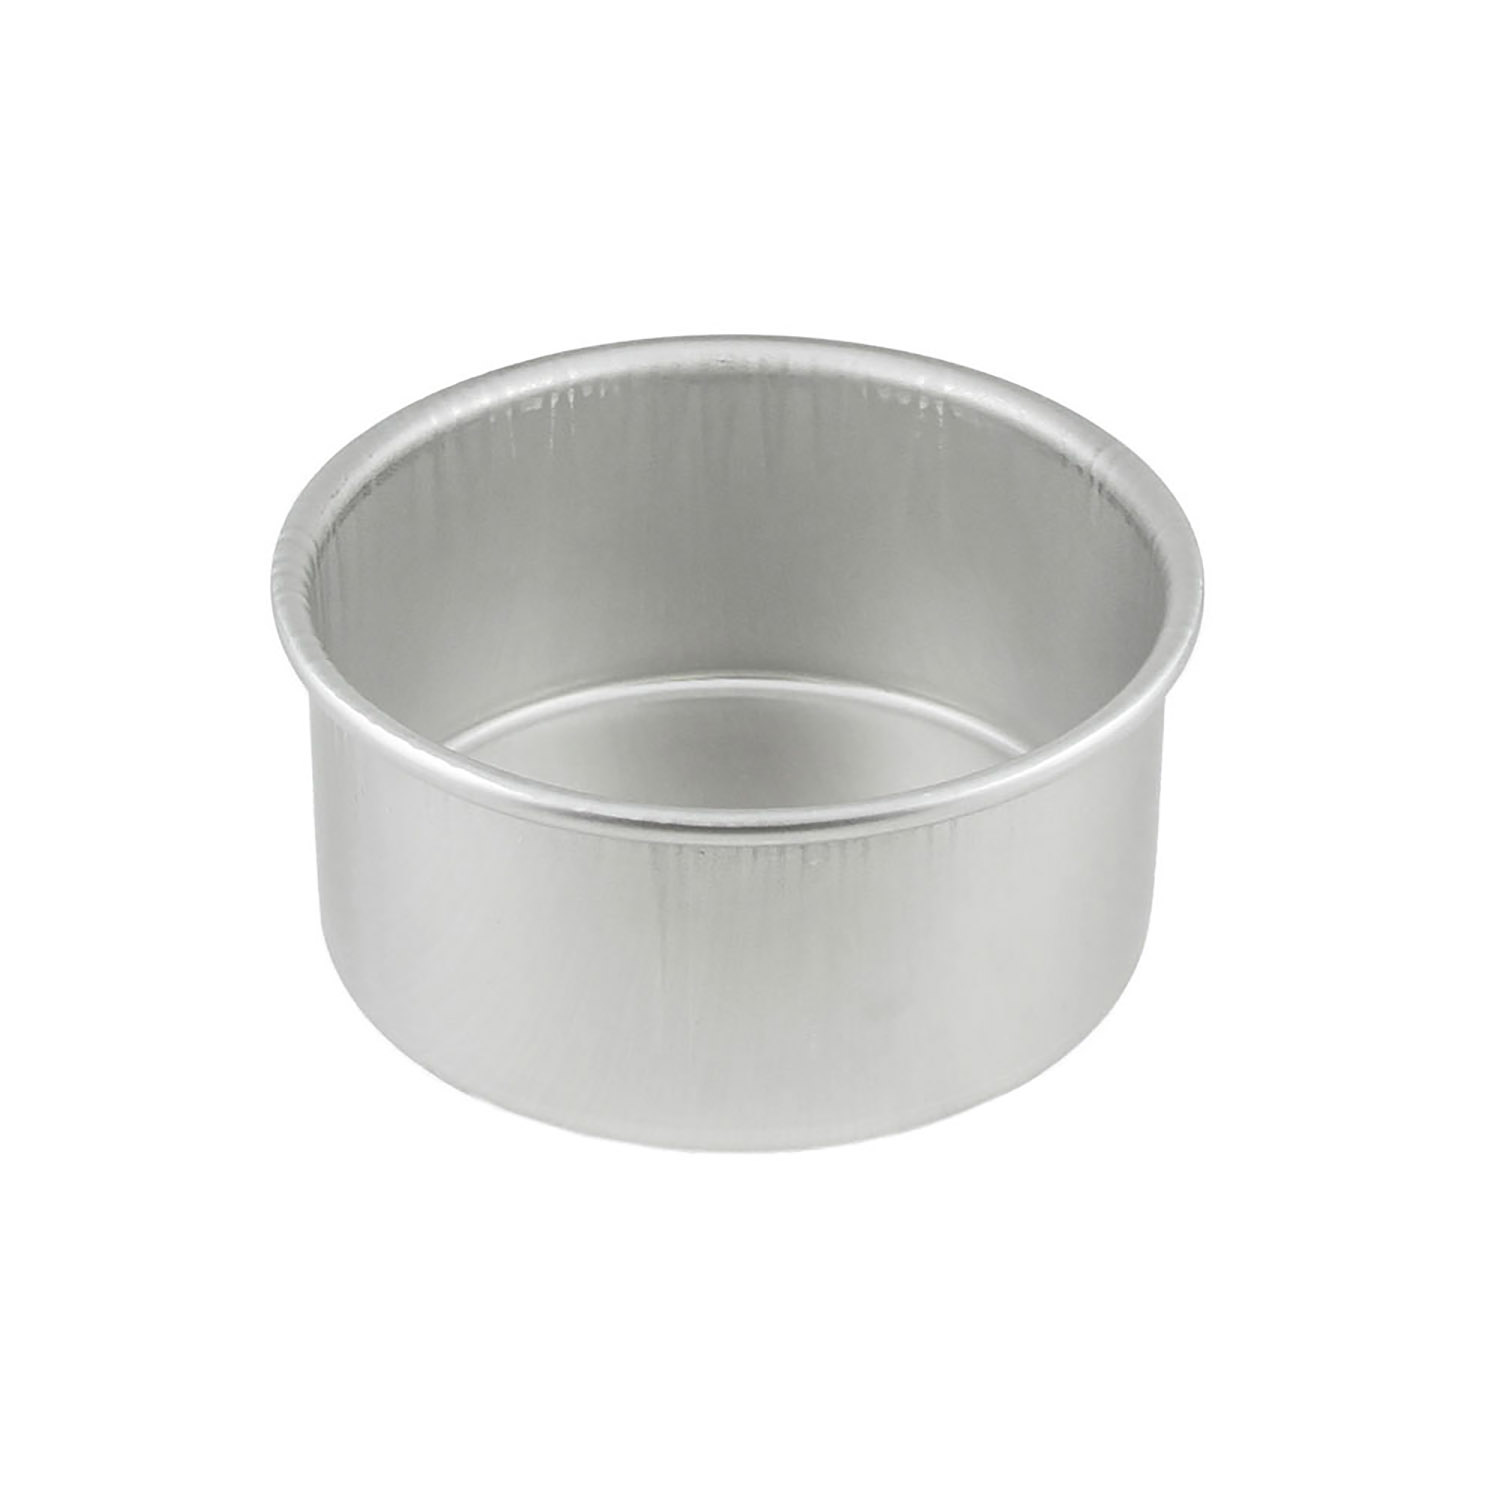 "6 x 3"" Magic Line Round Cake Pan"